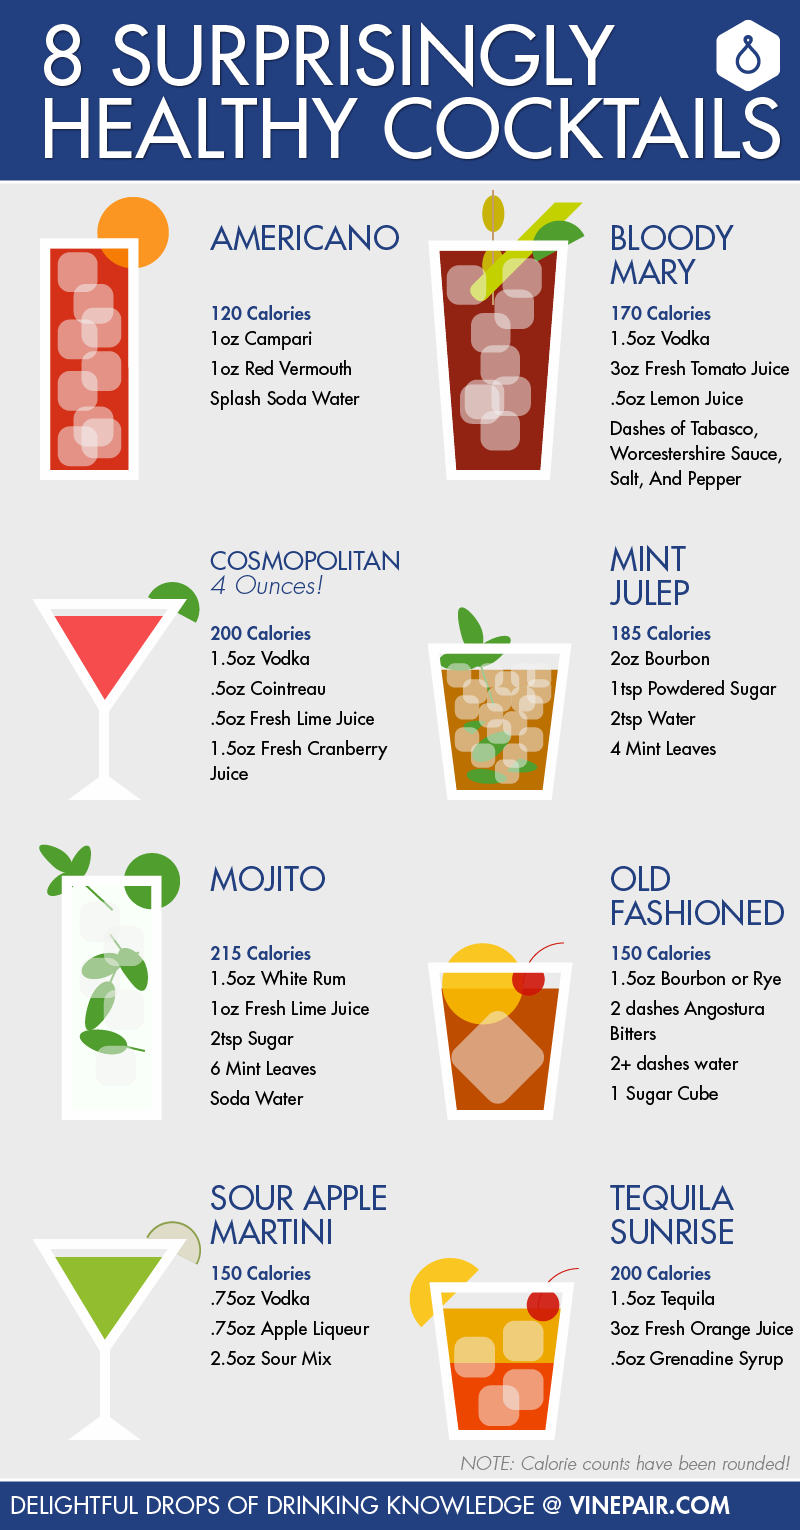 8 Surprisingly Healthy Cocktails